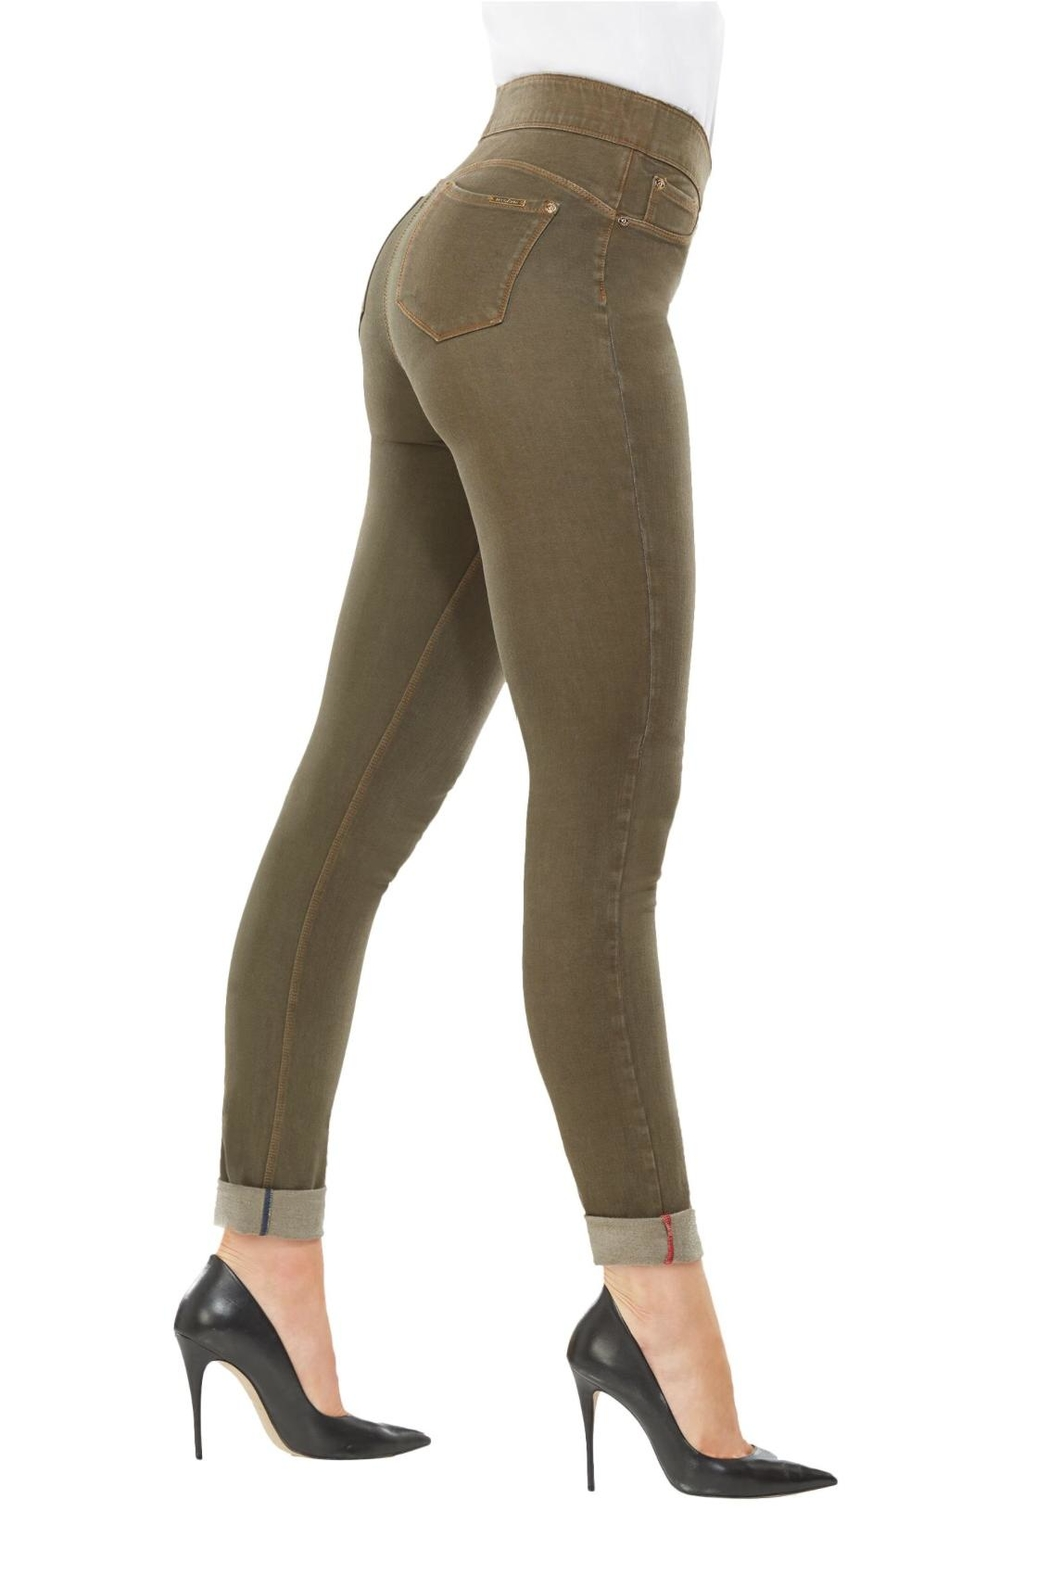 Nygard Olive Skinny Jeans - Front Full Image